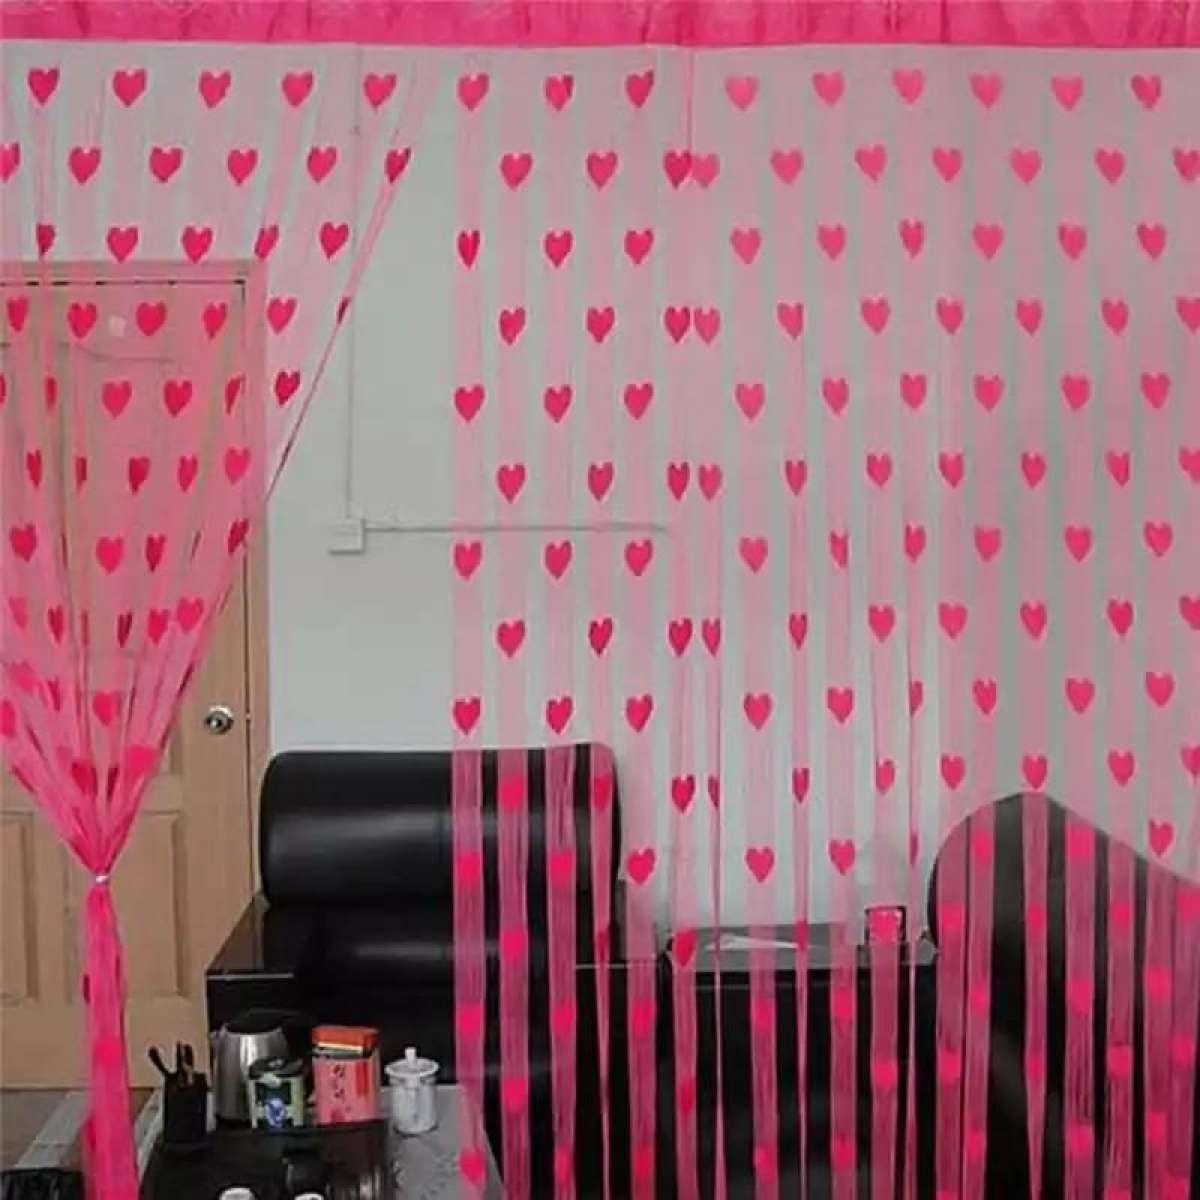 Door Curtains Valance Curtains For the Living Room Window Canopy Salon Heart Door Tassel Dividers Blind Line String